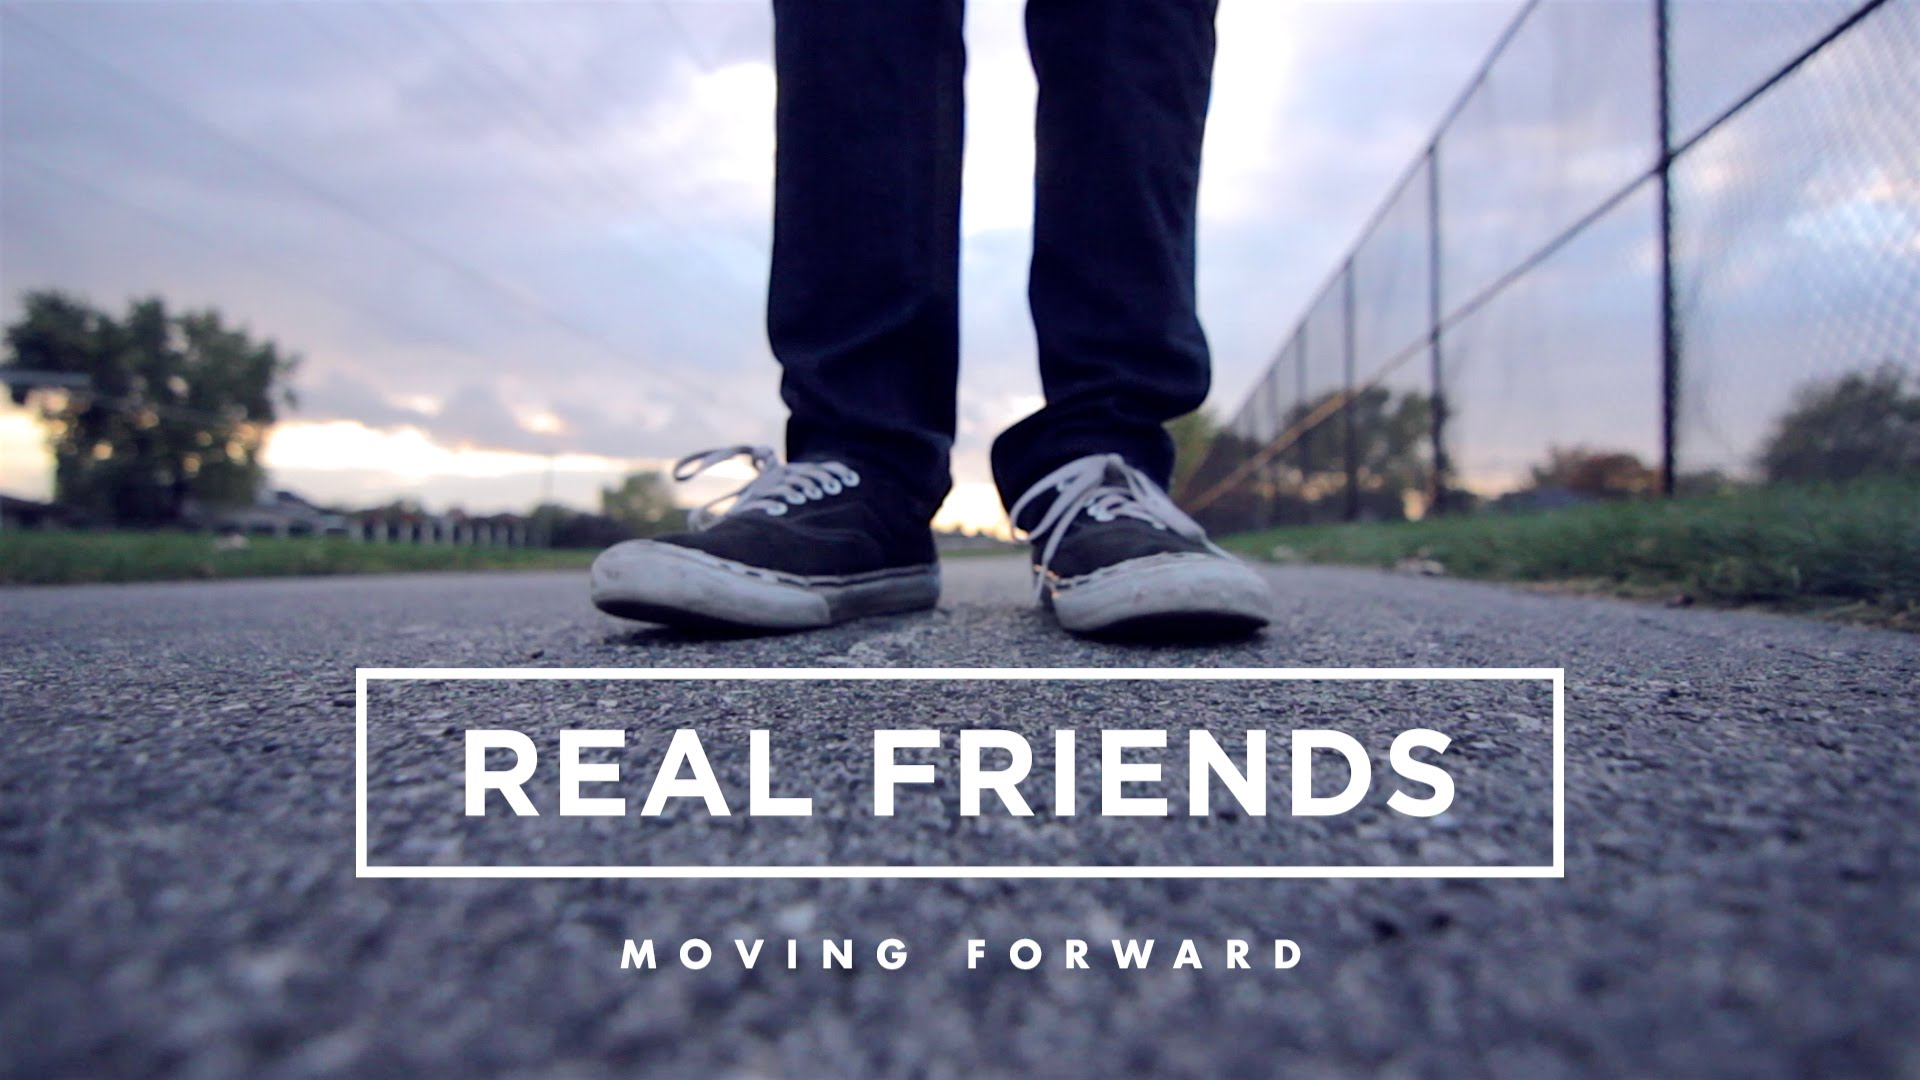 Download Real Friends Wallpaper Gallery